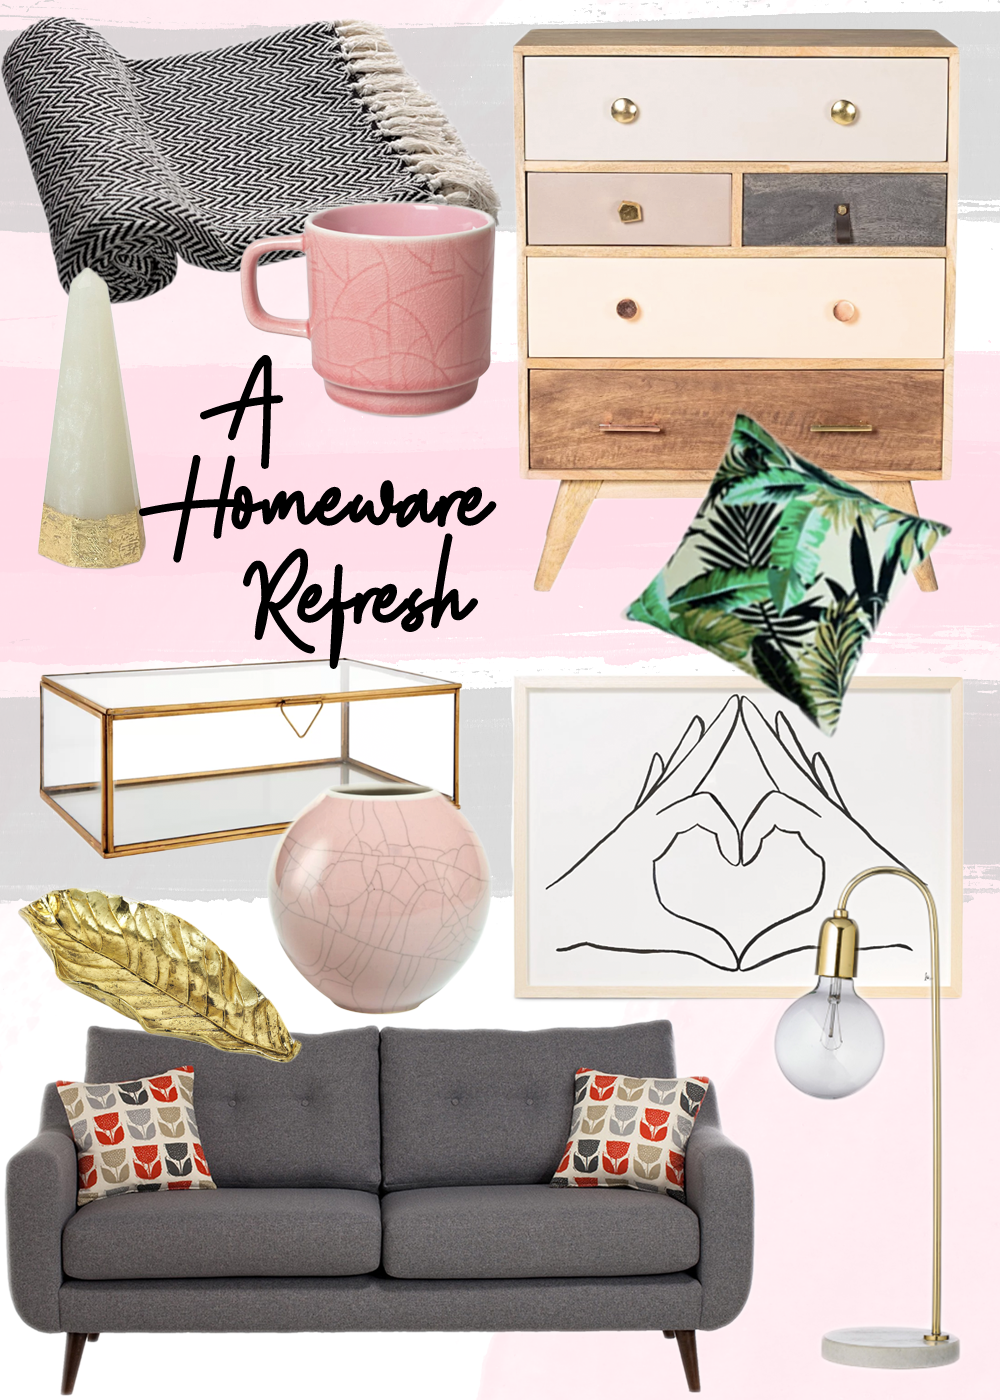 A Homeware Refresh for the New Year Wishlist